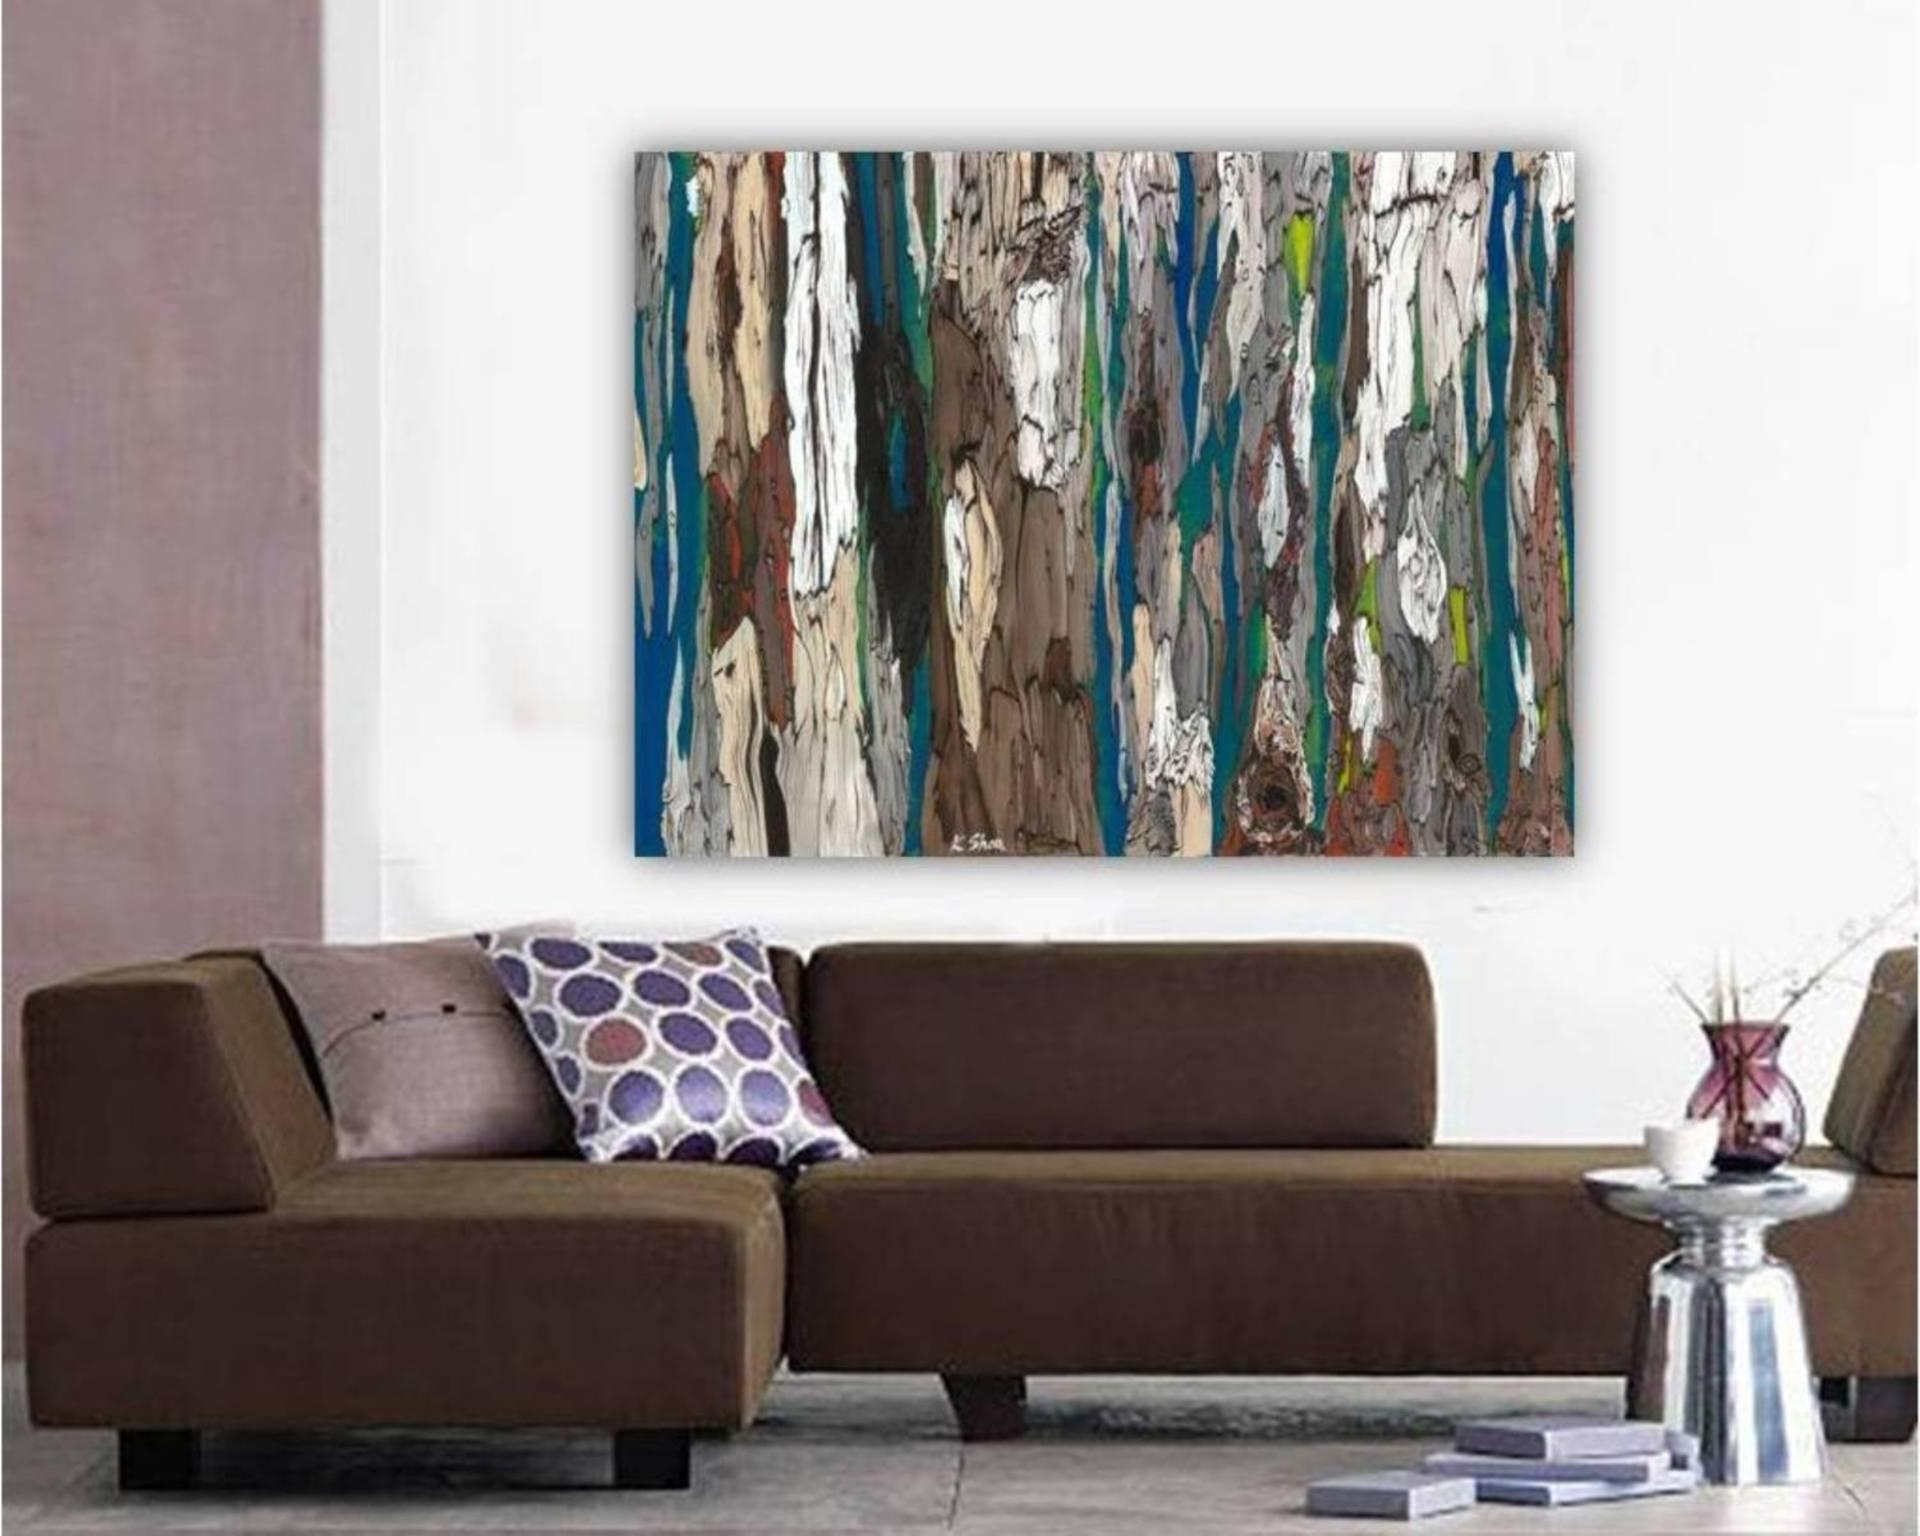 Wall Design: Abstract Wall Art Images (Image 17 of 20)